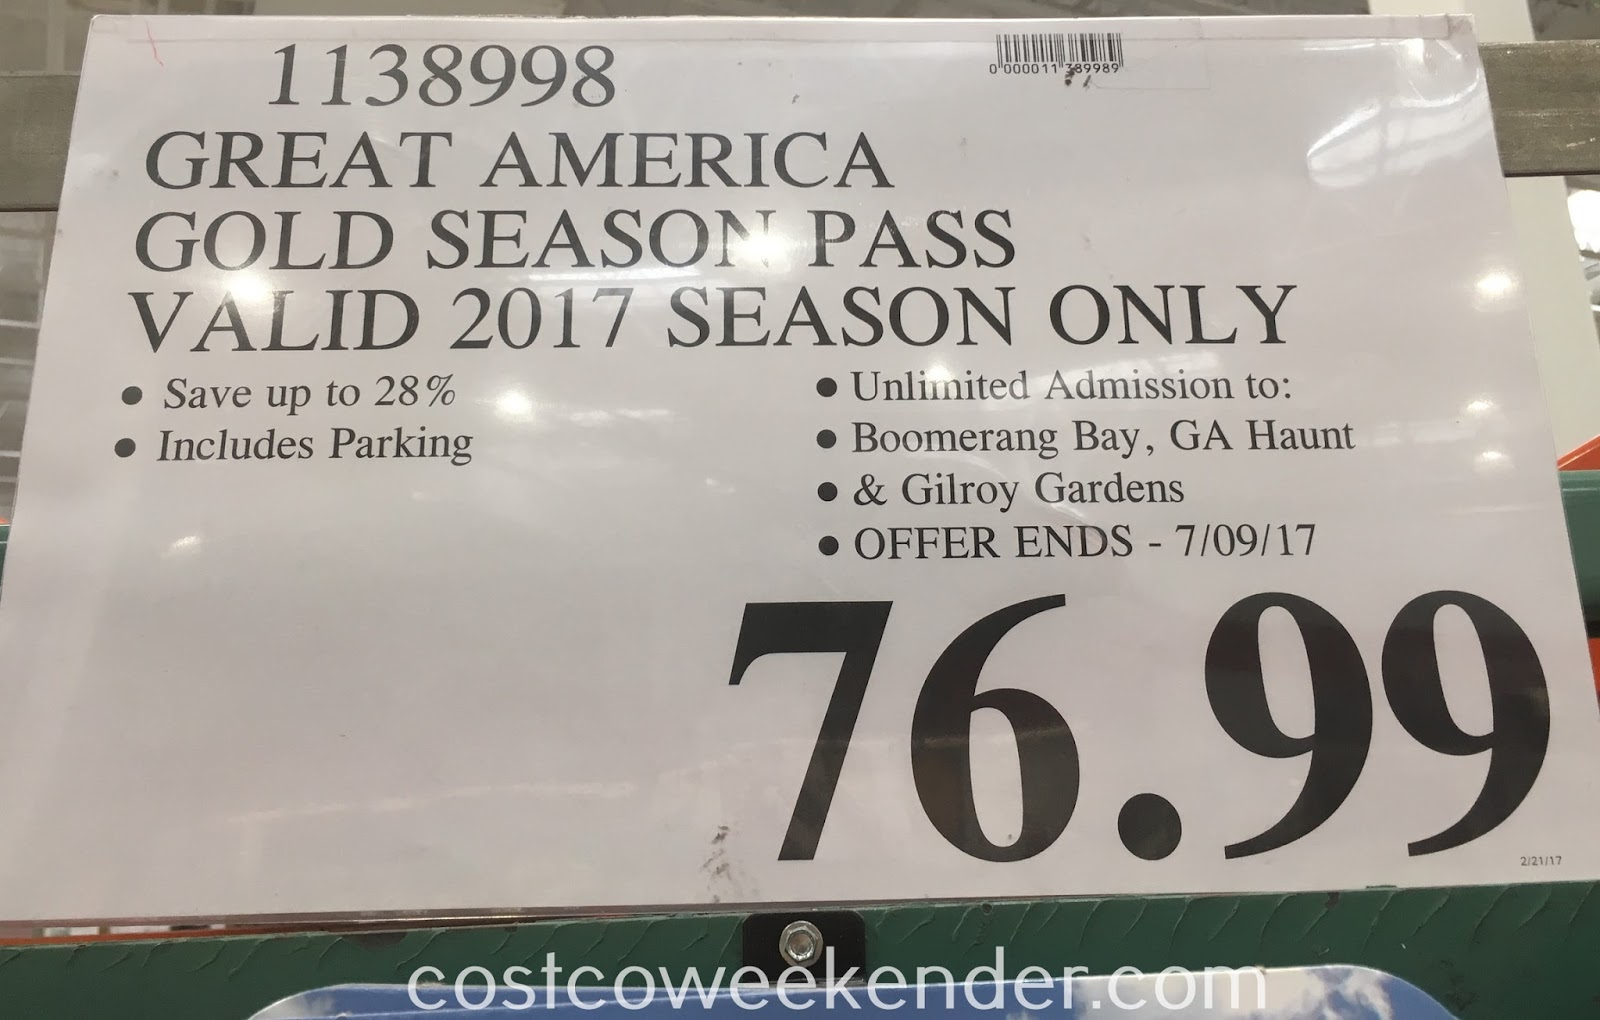 Deal for the 2017 Great America Gold Season Pass at Costco